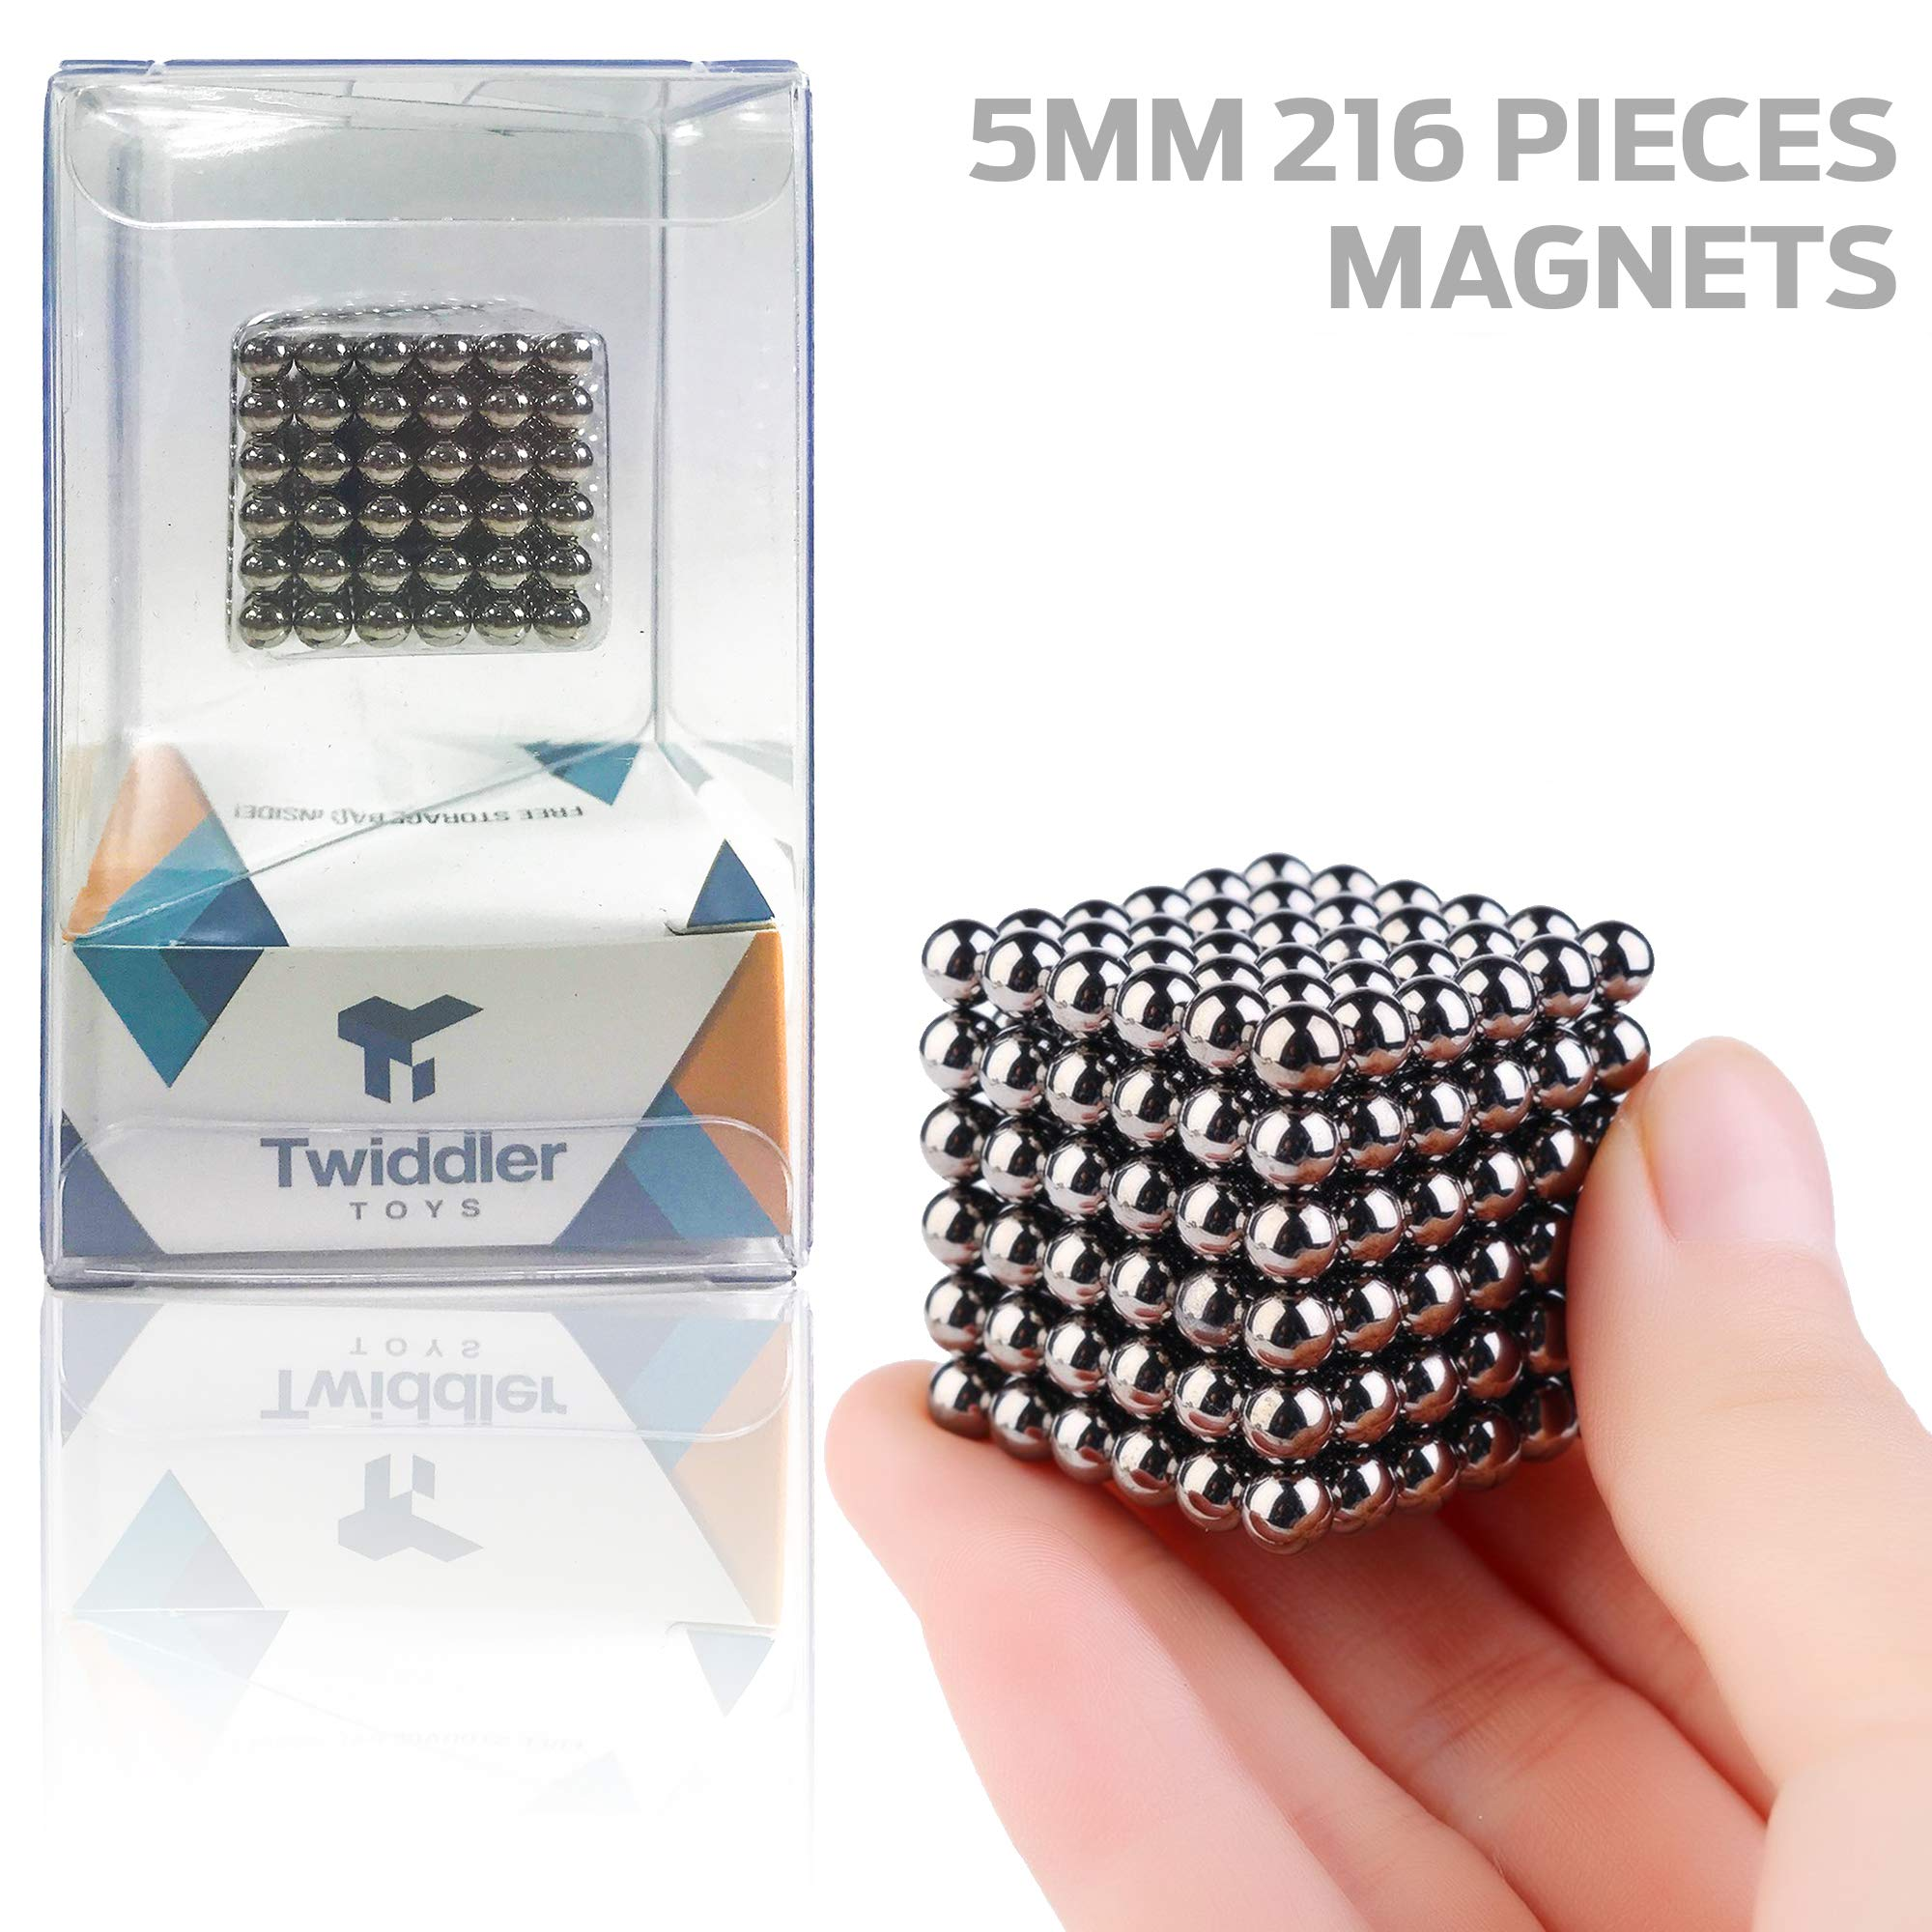 Twiddler Toys Upgraded 5MM 216 Pieces Magnets Sculpture Building Blocks Toys for Sculpture Stress Relief Magnet Intelligence Development - Office Toy for Adults by Twiddler Toys